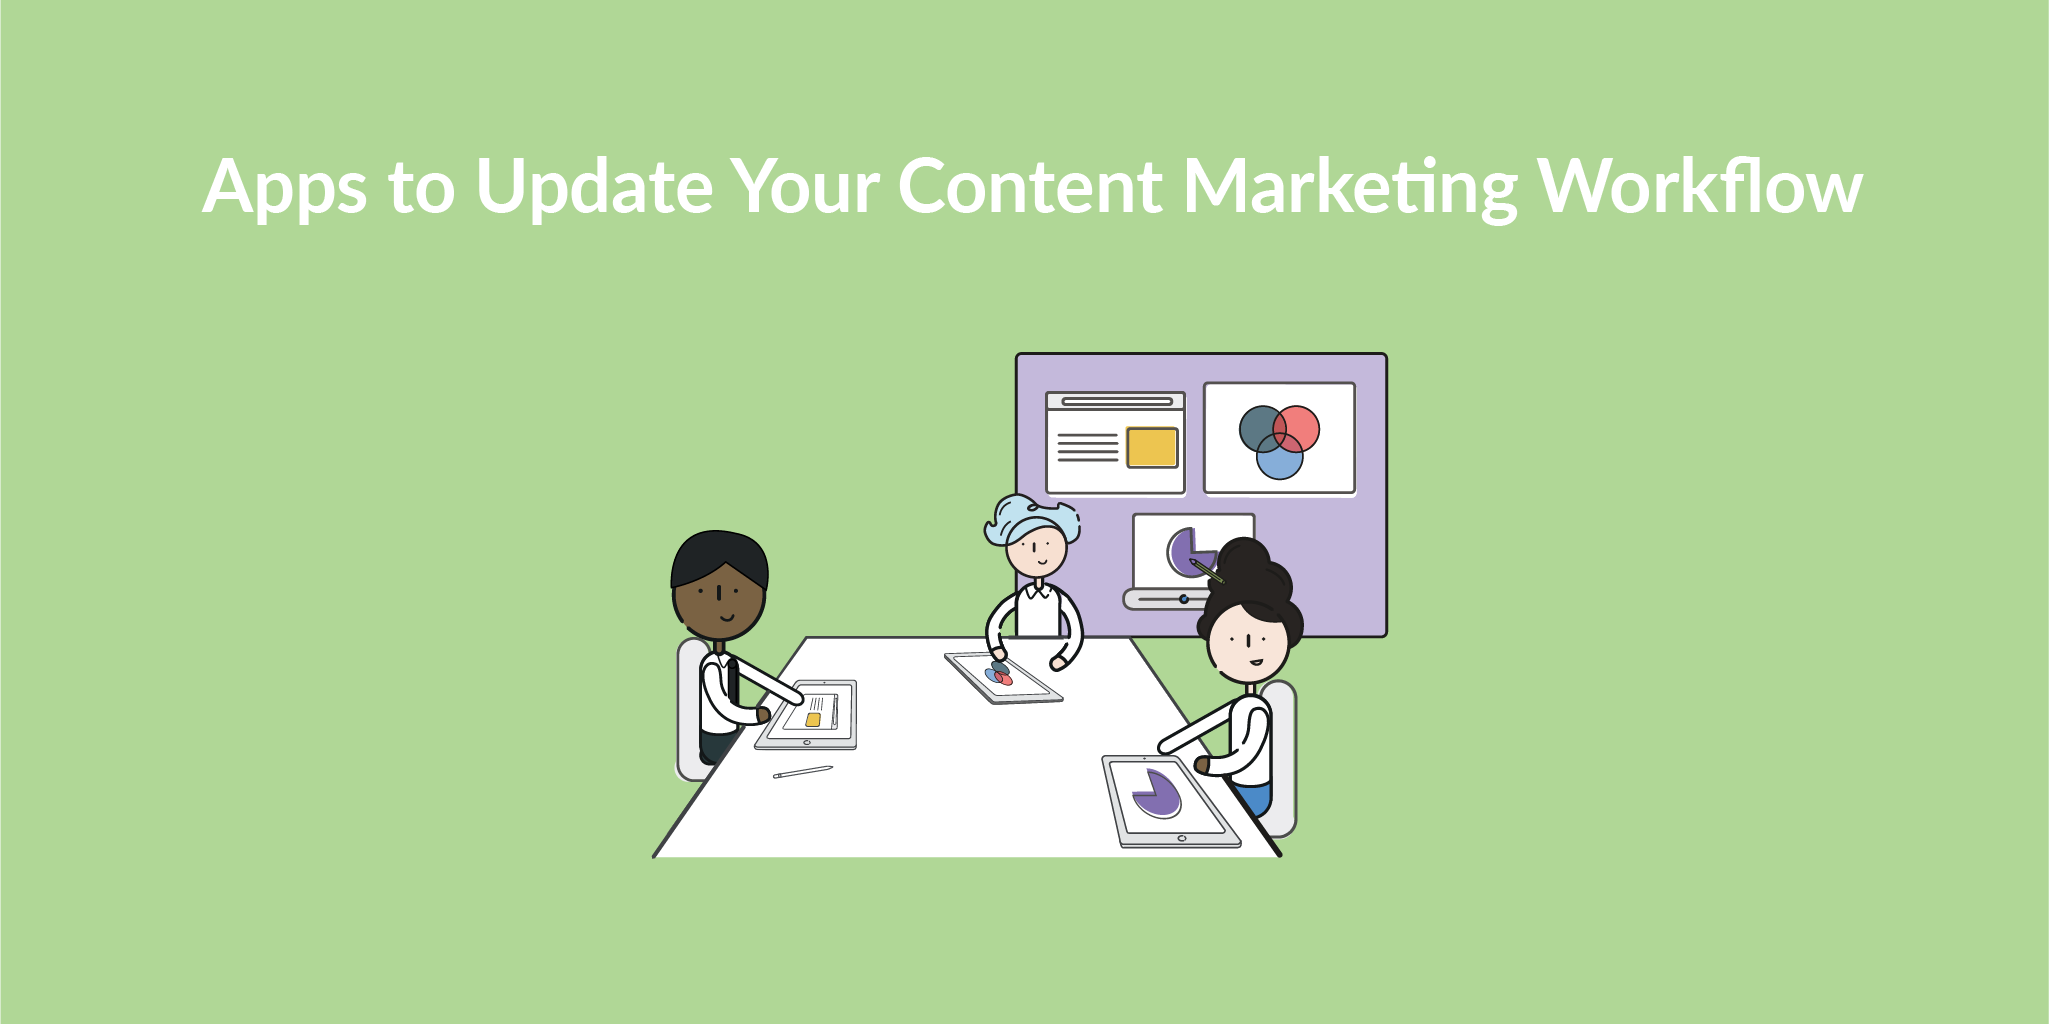 Explain Everything is the best app to update content marketing